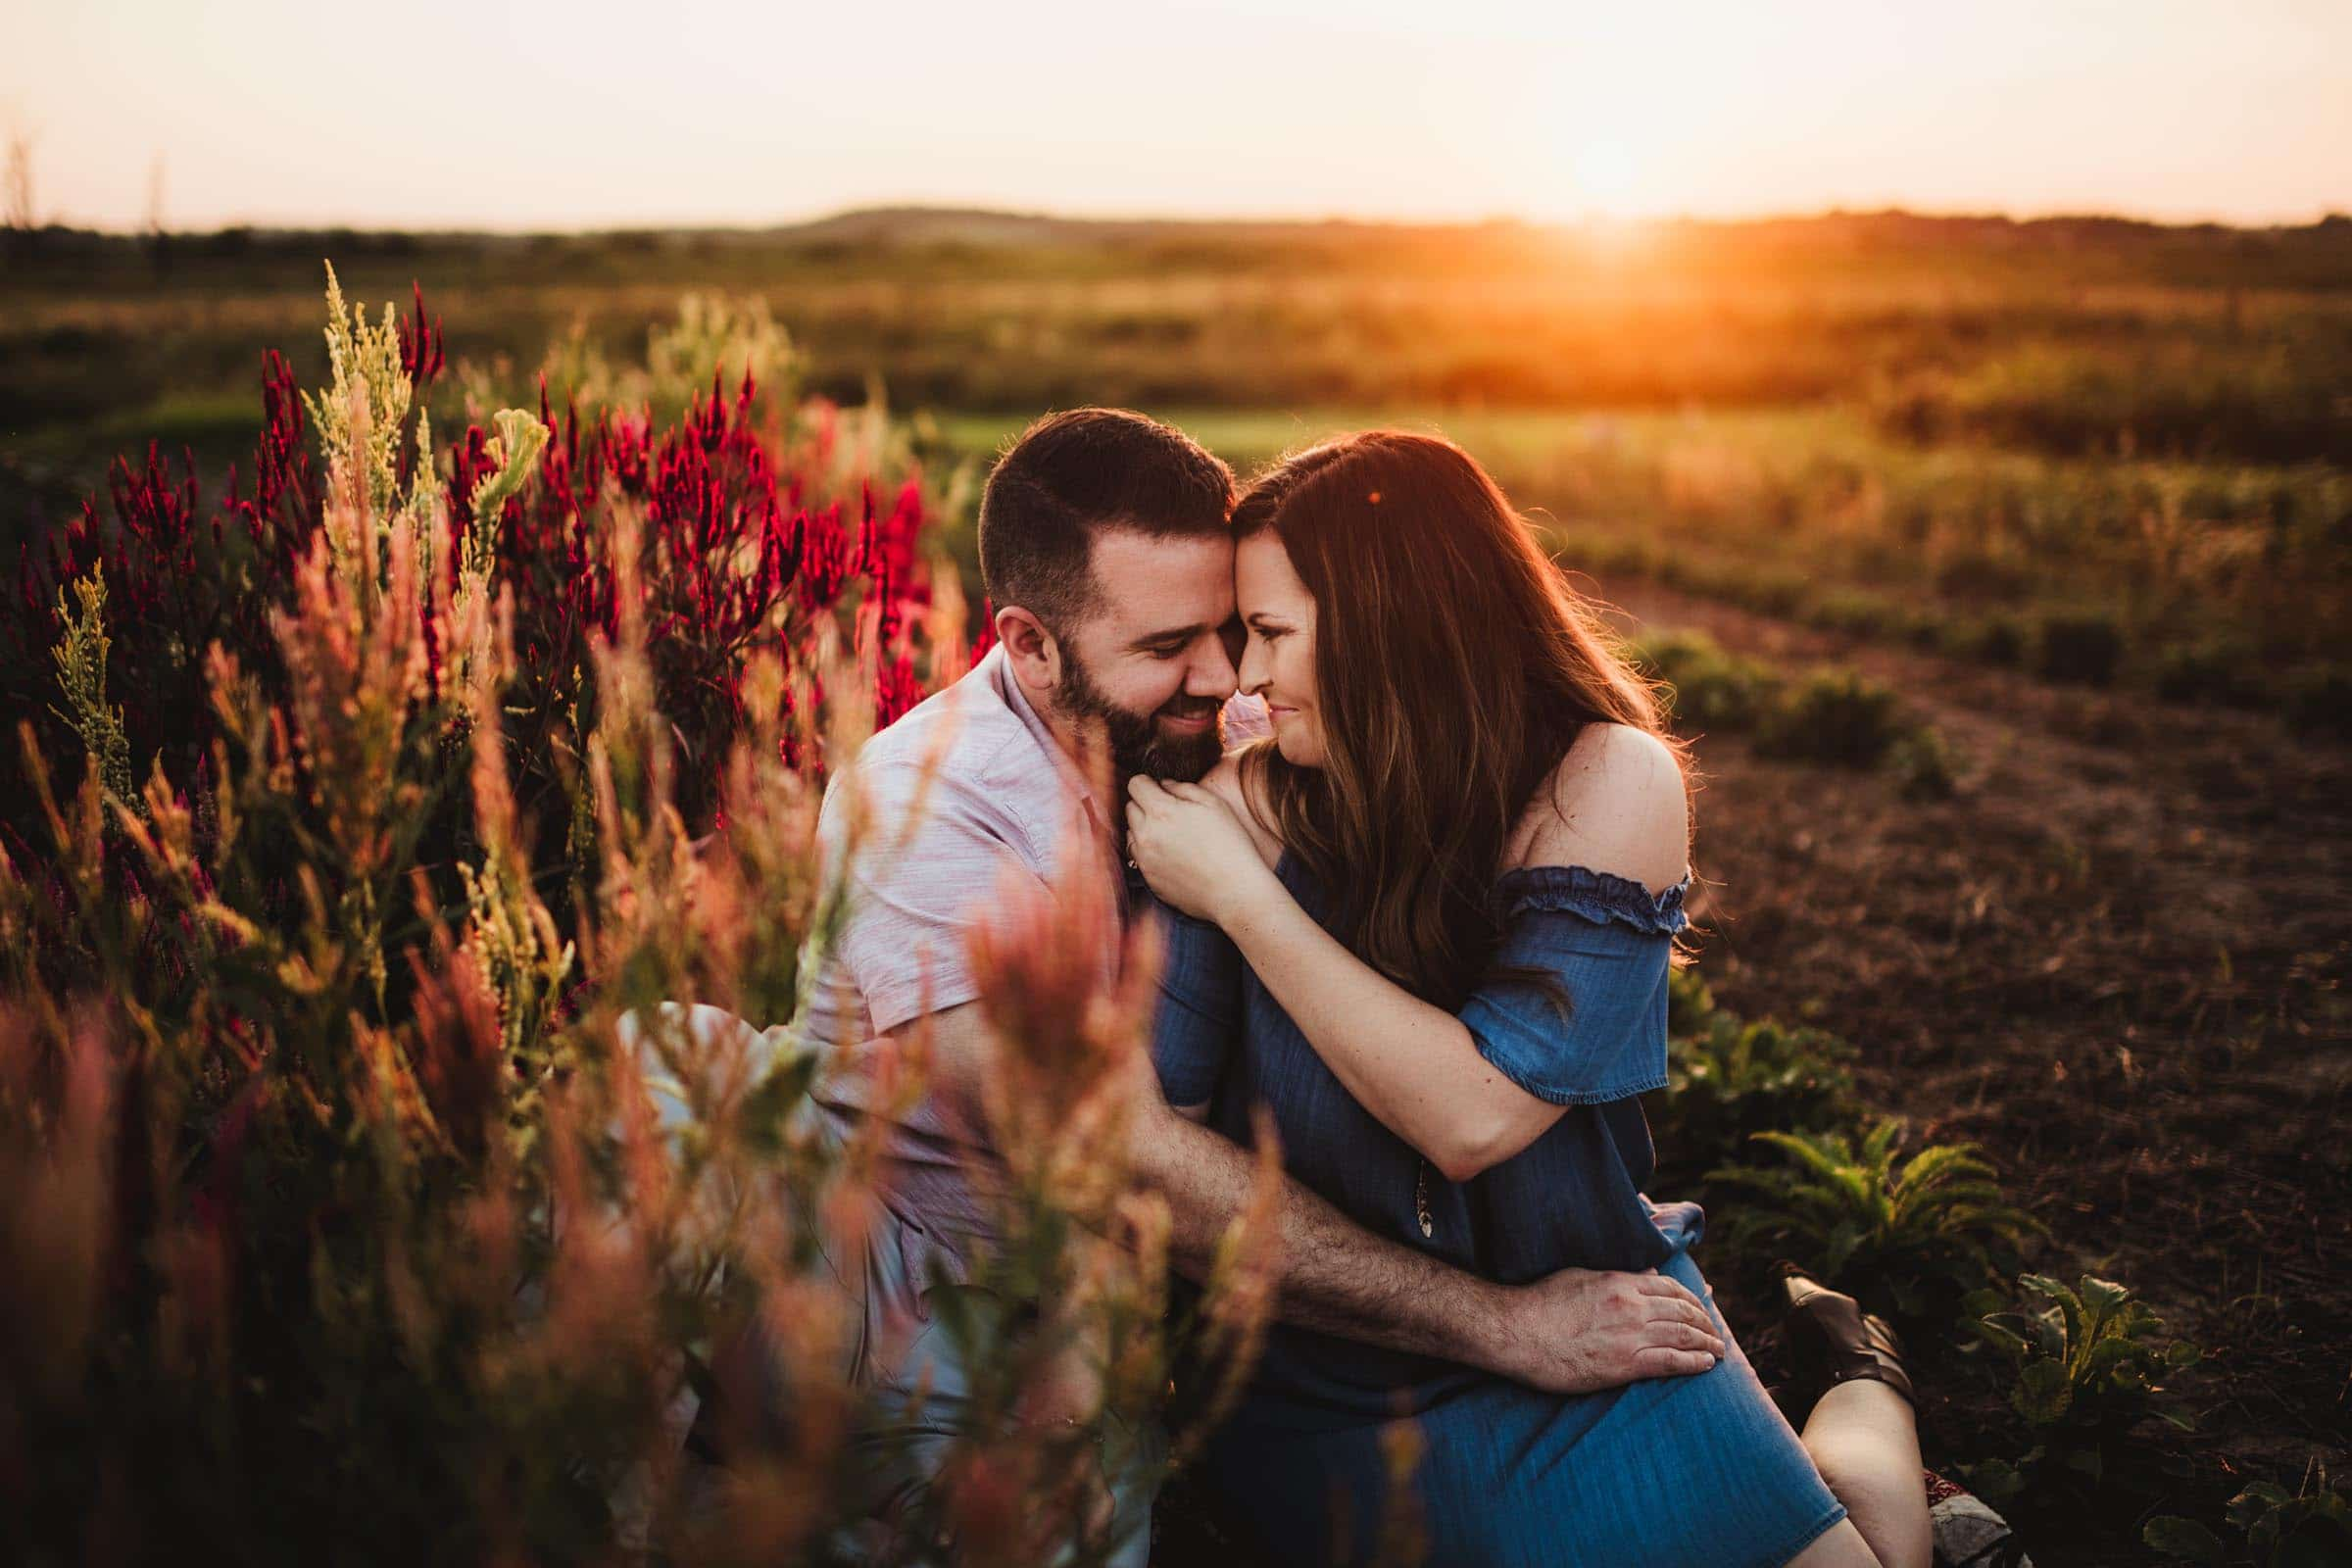 Couple Snuggling Flower Field at Sunset